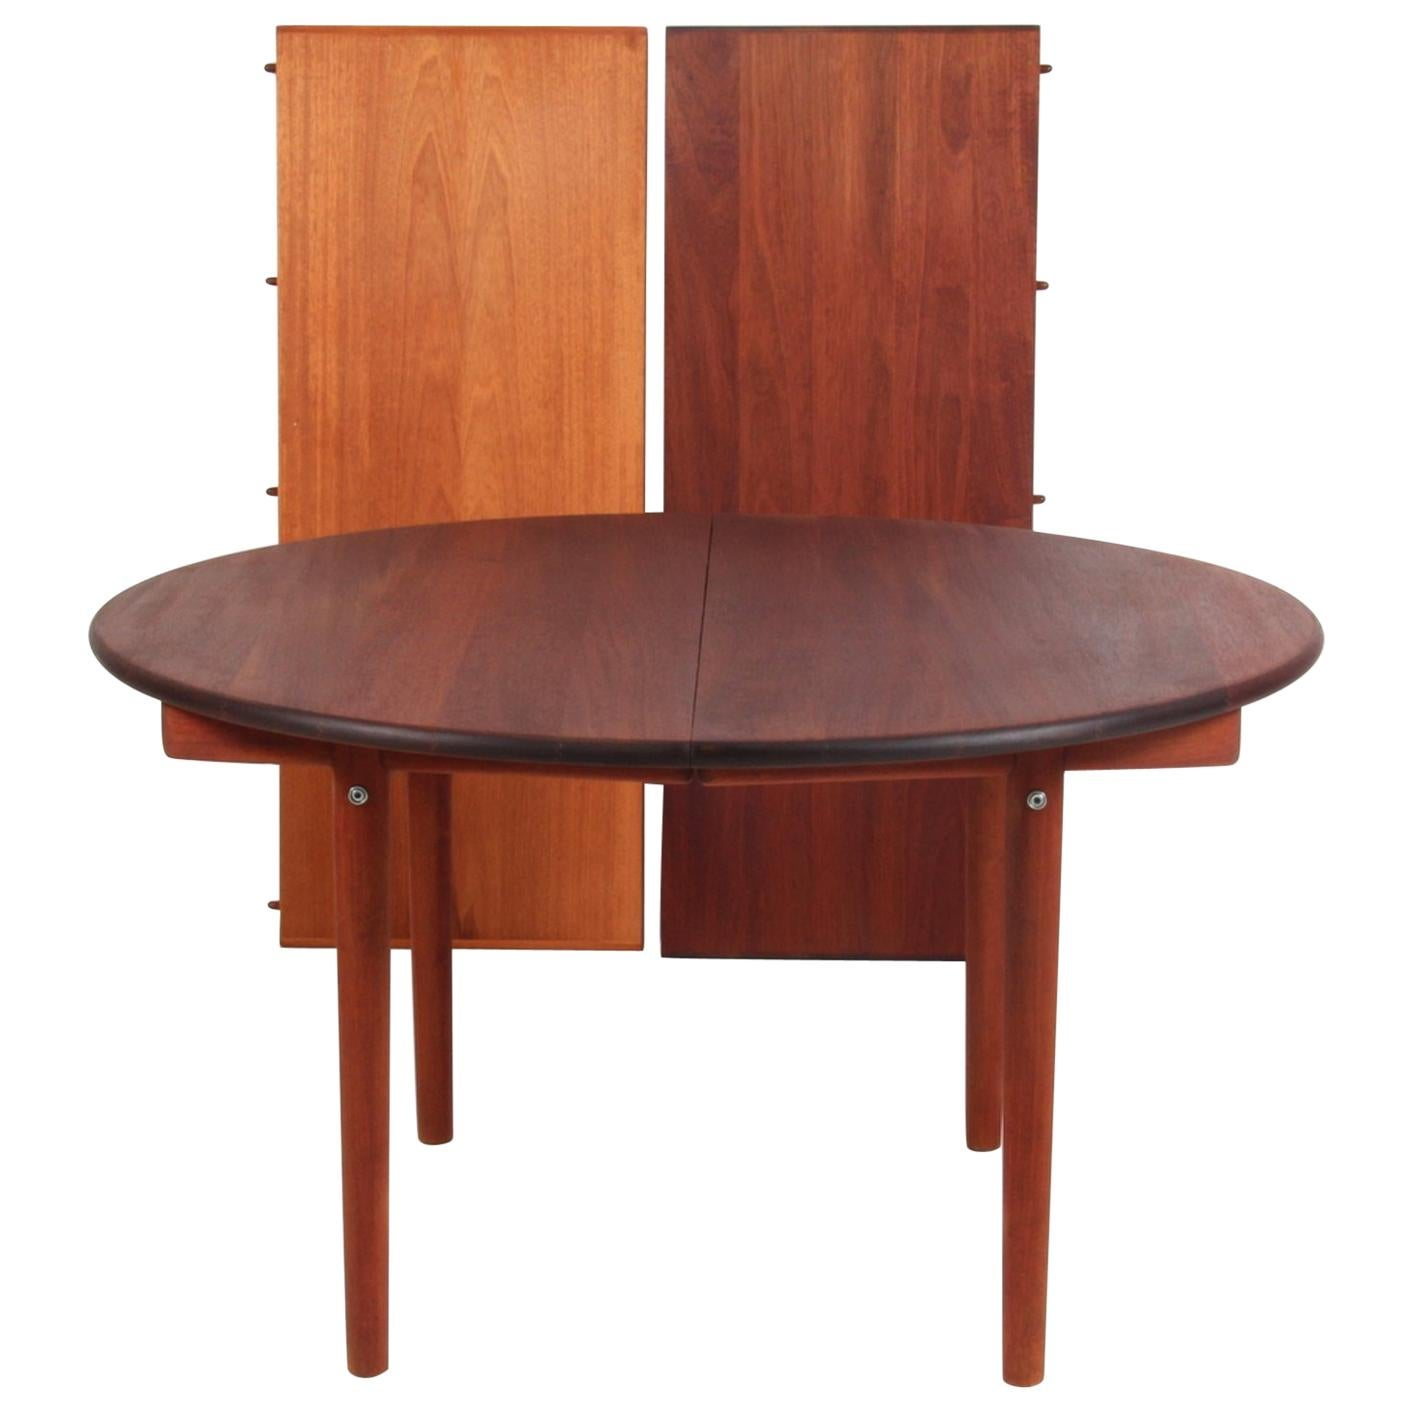 Round Dining Table With Extensions Hans J Wegner Round Dining Table With Two Extensions Plate Pp70 Mahogany